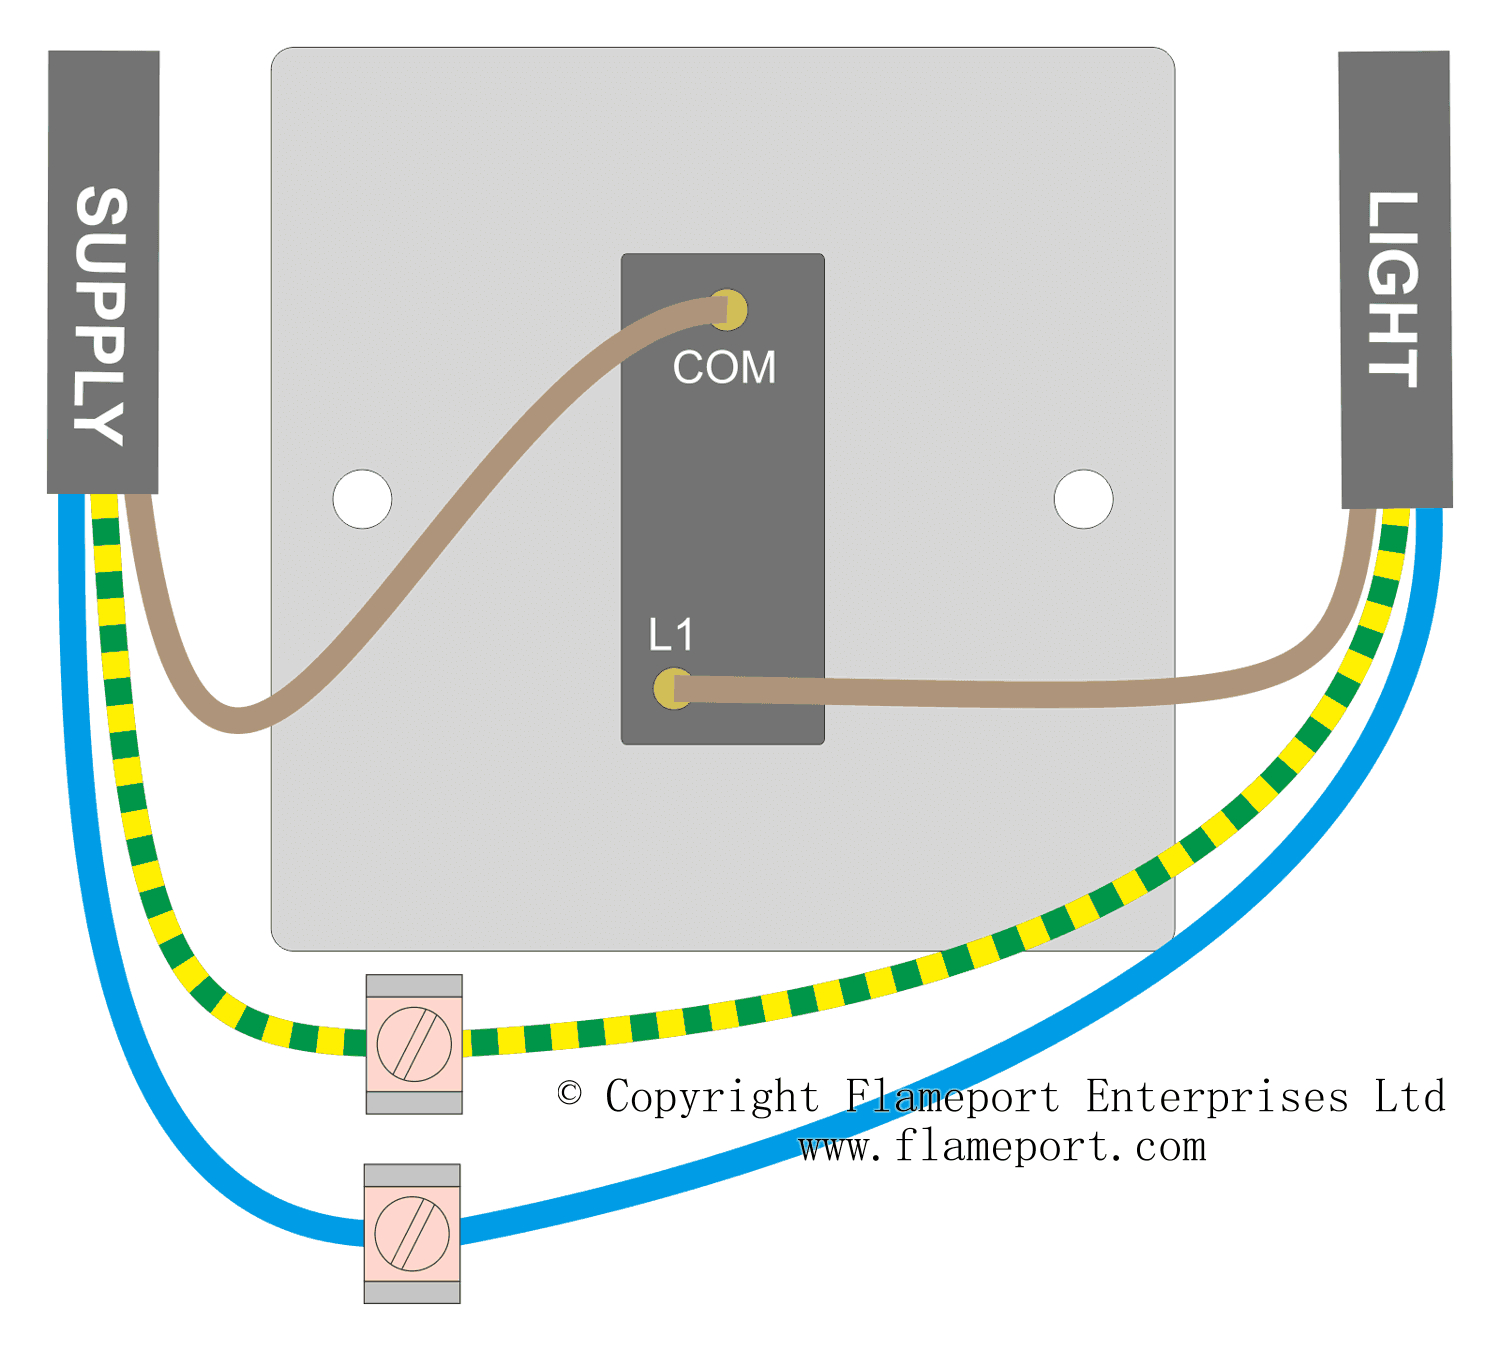 Wiring For A Single Loft Or Garage Light - Wiring A Light Switch Diagram